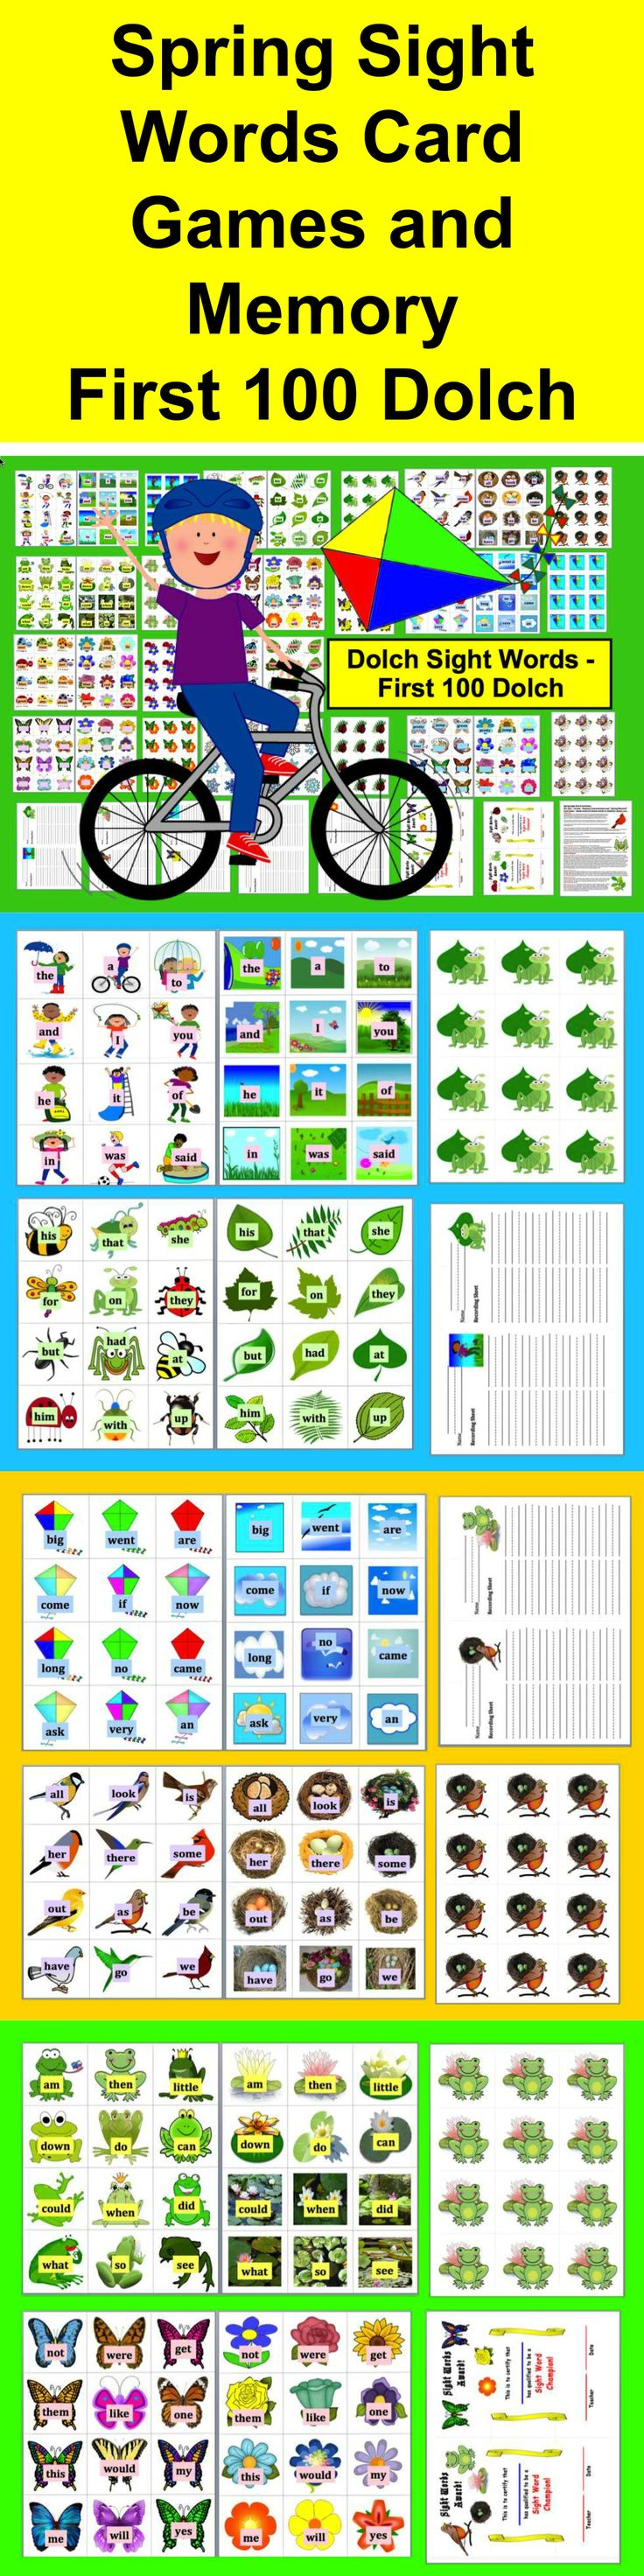 "$ Spring Sight Word Activities-  SET One – 10 Sets – Memory/Concentration, ""Spring Blizzard!"" Card Game and more! – blank cards for theme words or students' names, too…5 Ways to Play - Memory, Old Maid, Follow the Path, Roll and Read, Spring Blizzard - Print With or Without Backings  55 page download - First 100 Dolch Words. (See set 2 in my other product listings for the last 120 Dolch Words.)"